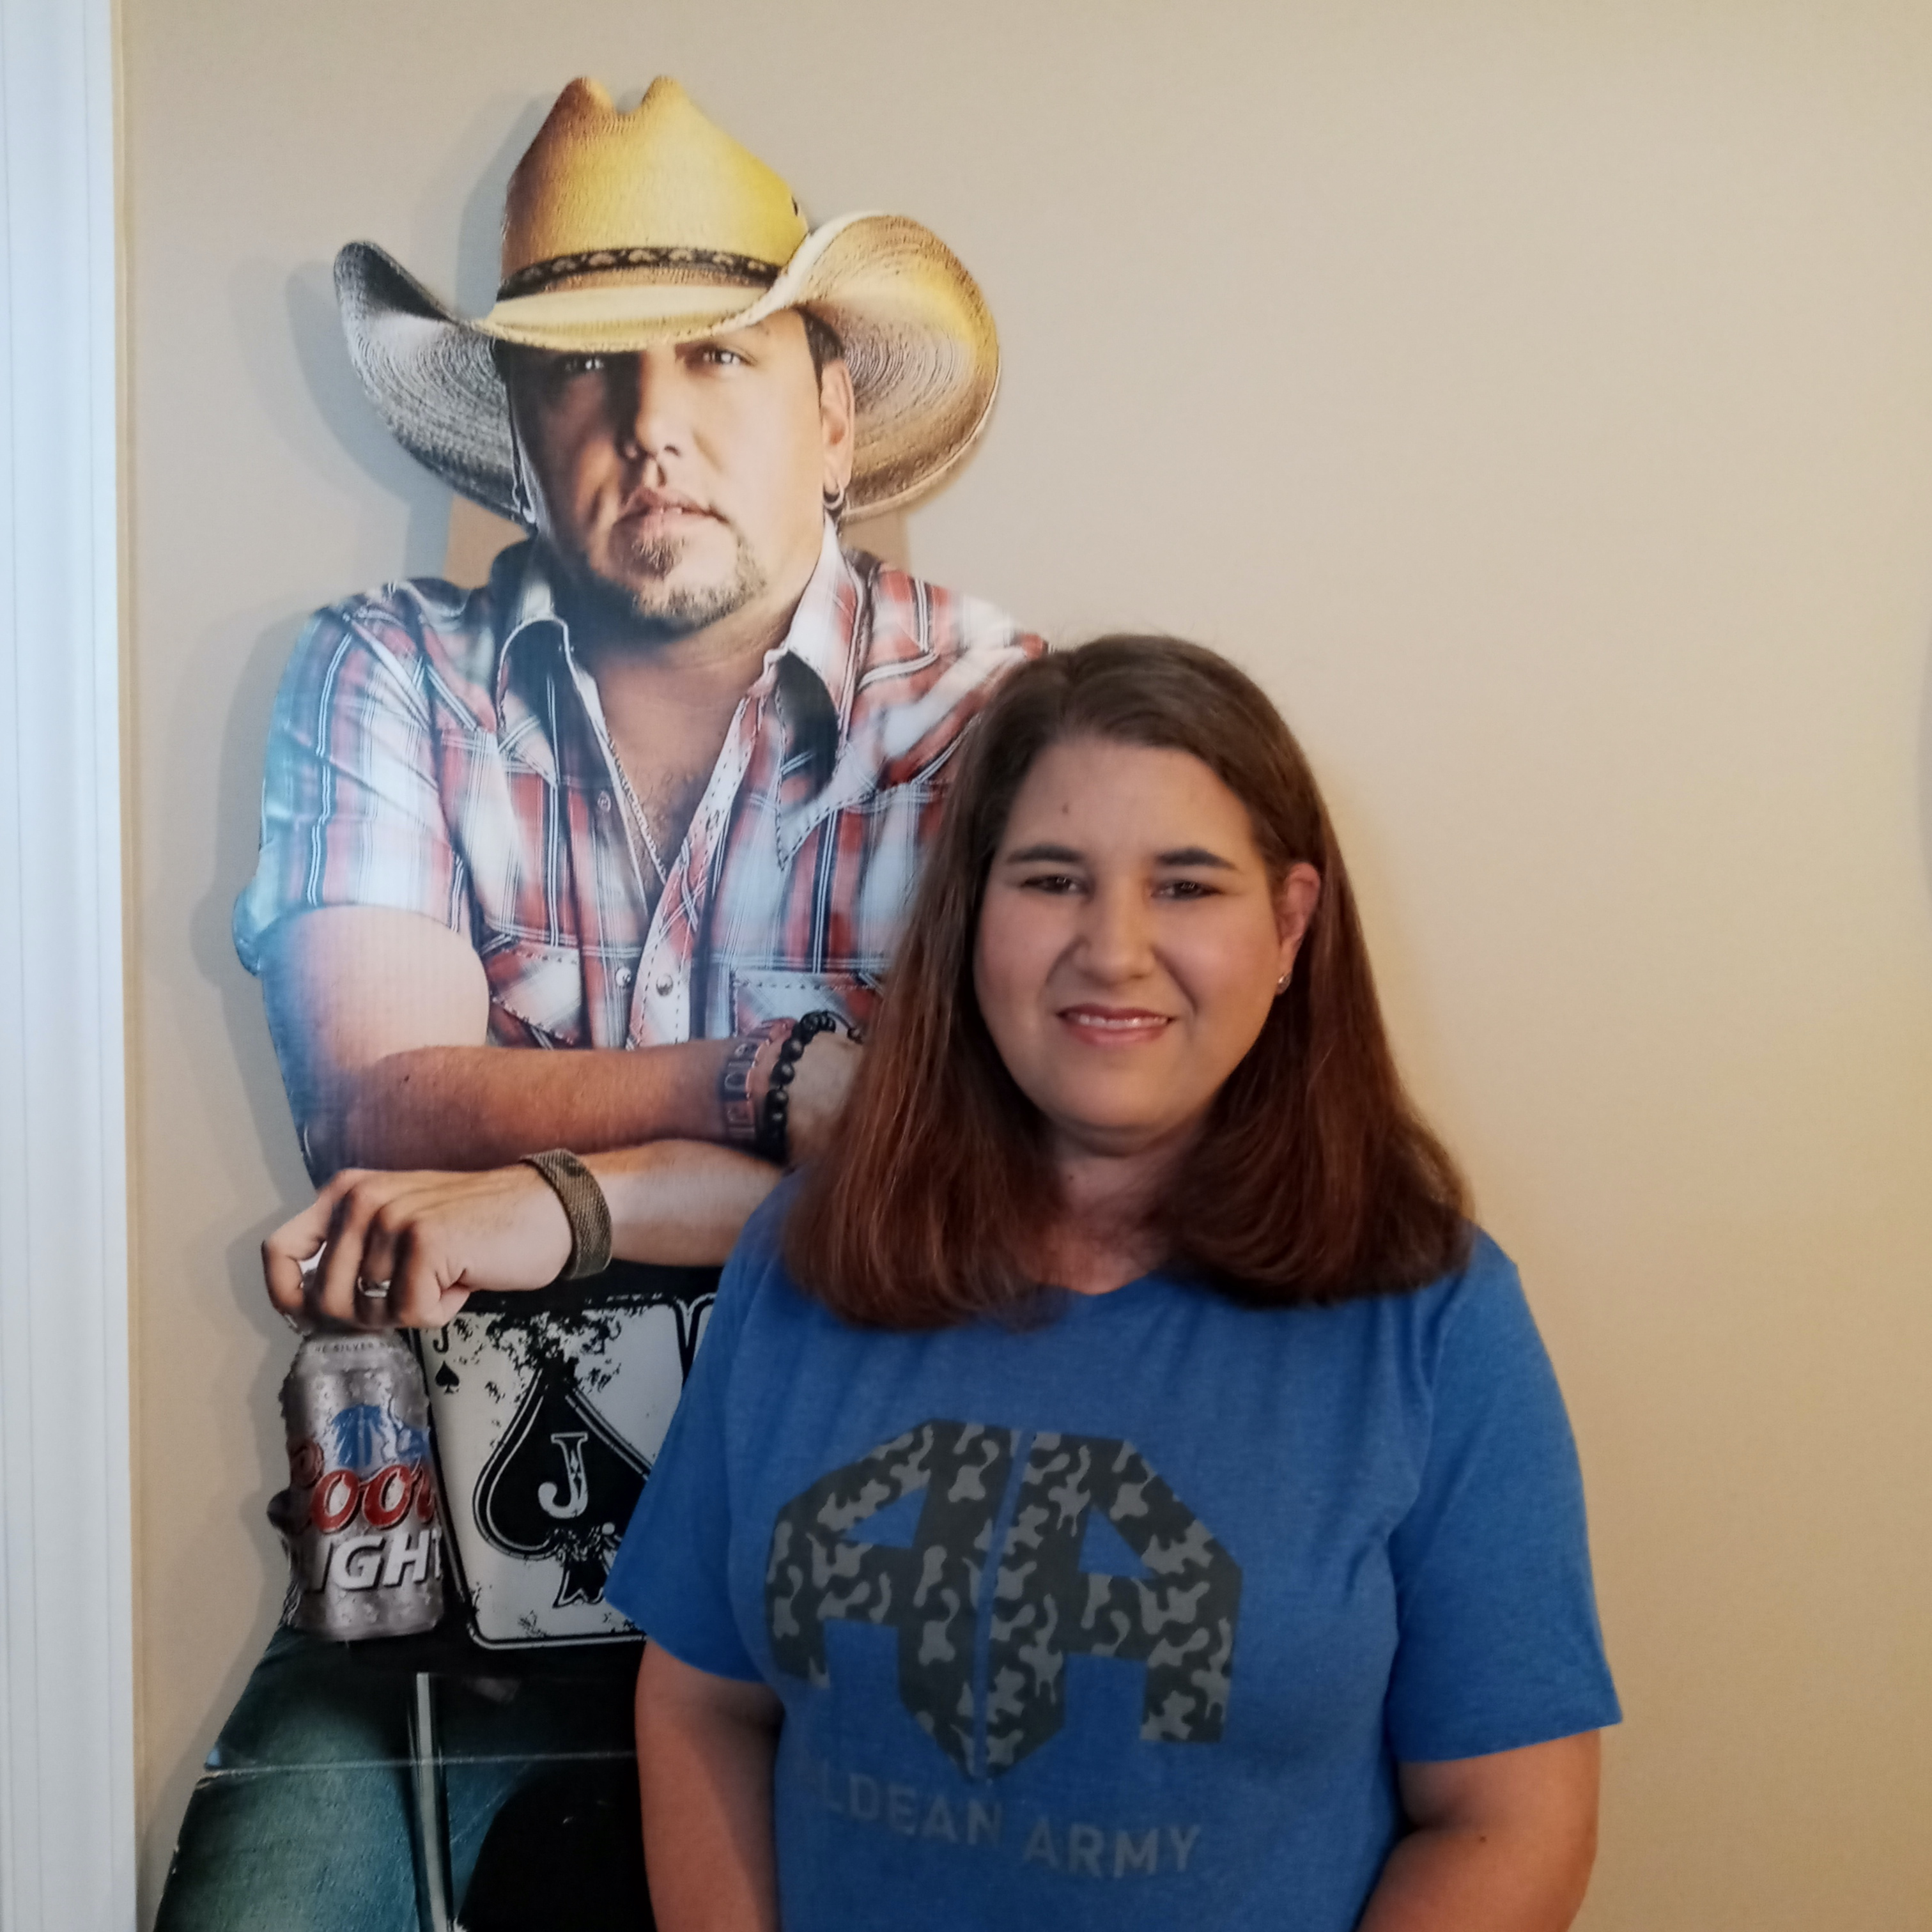 CONGRATULATIONS TO THE ALDEAN ARMY FEBRUARY FAN OF THE MONTH